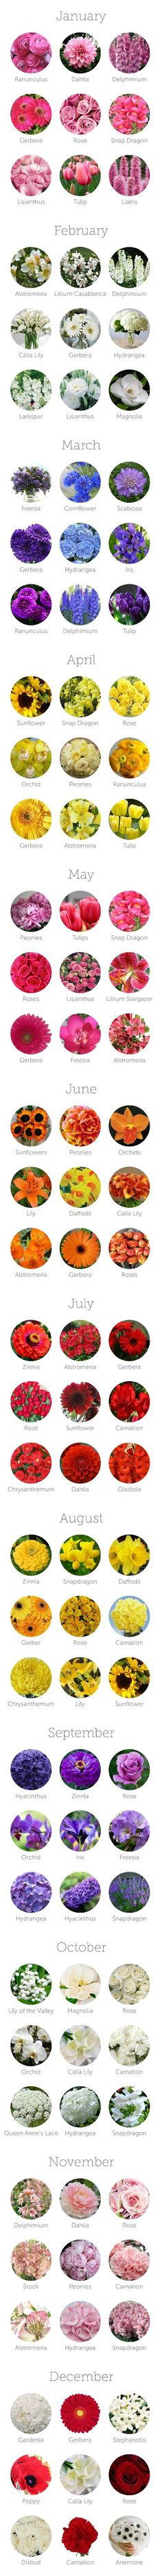 Flowers Available By Season / The Budget Savvy Bride.